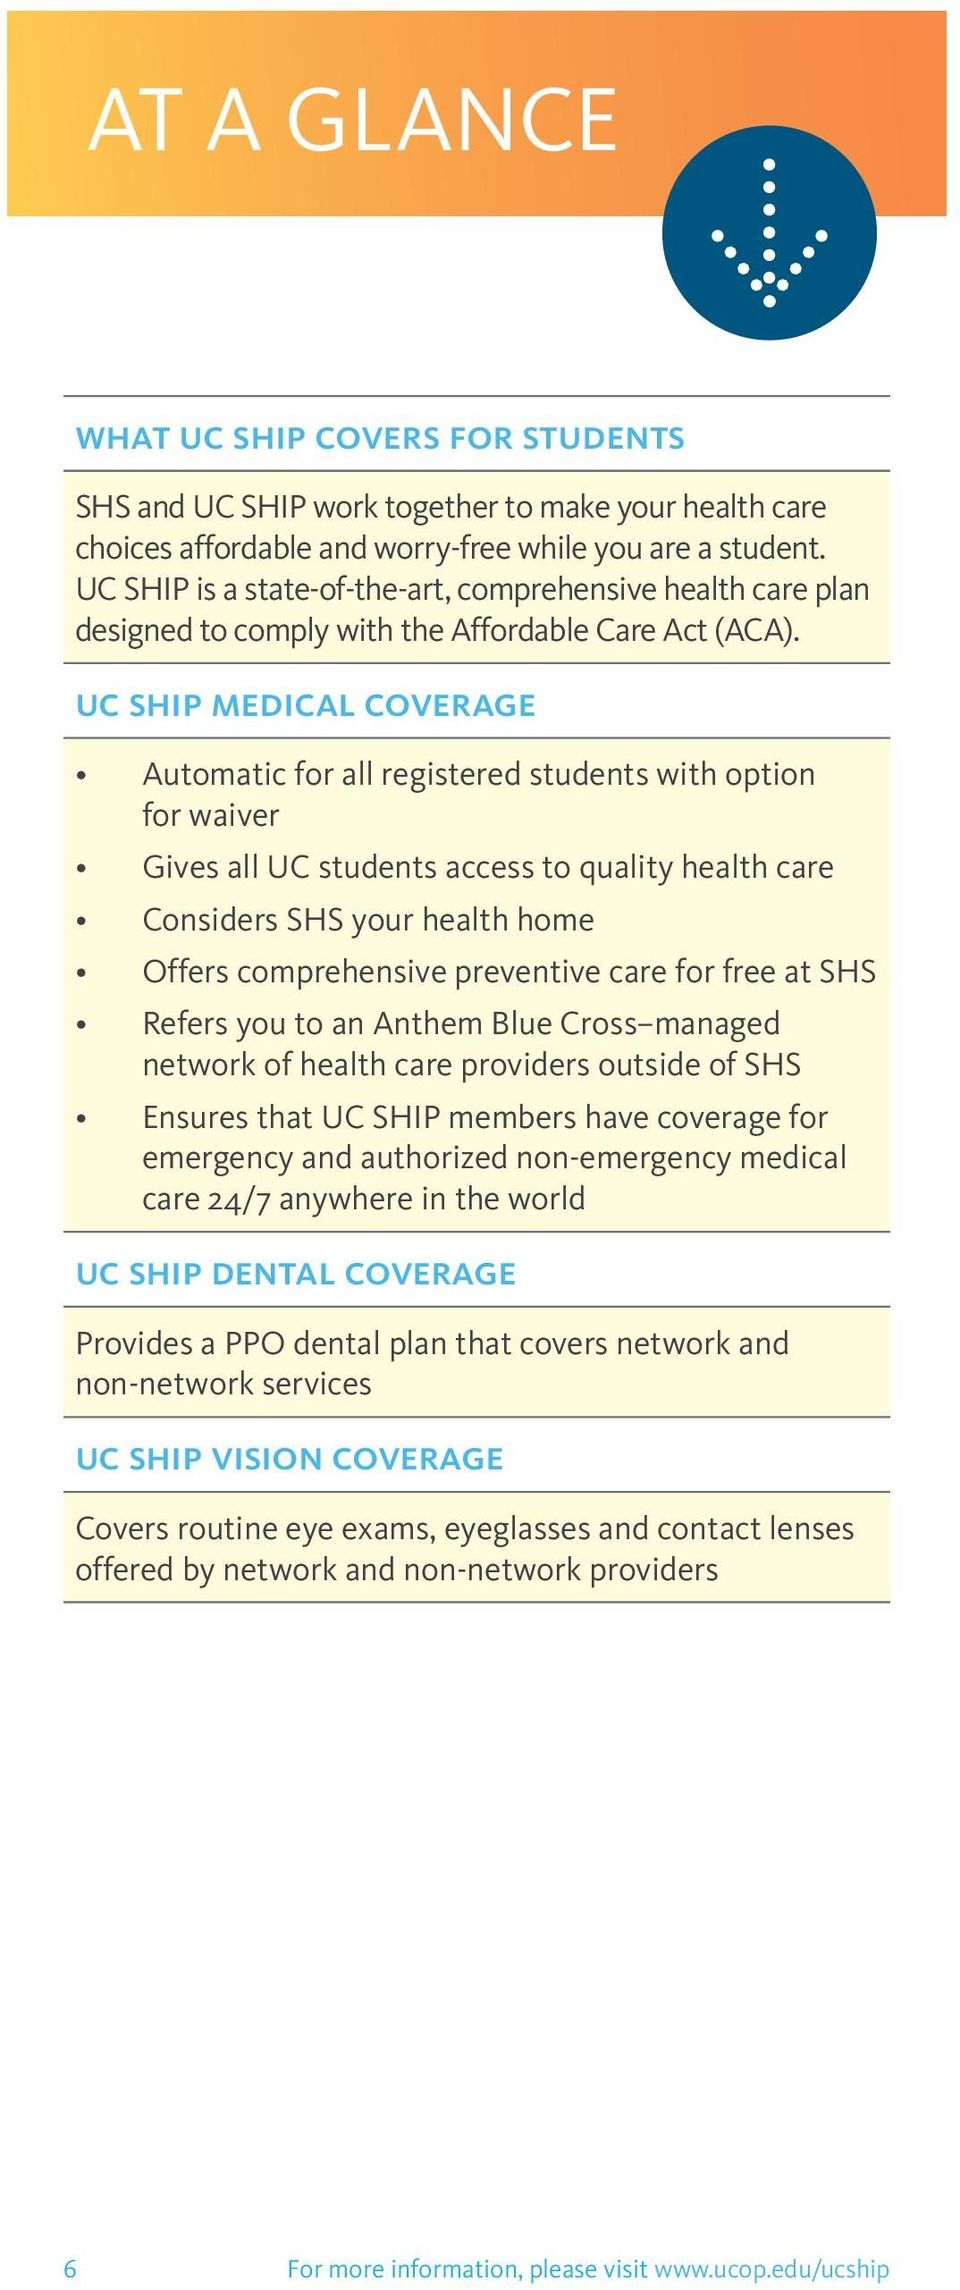 uc ship medical coverage Automatic for all registered students with option for waiver Gives all UC students access to quality health care Considers SHS your health home Offers comprehensive